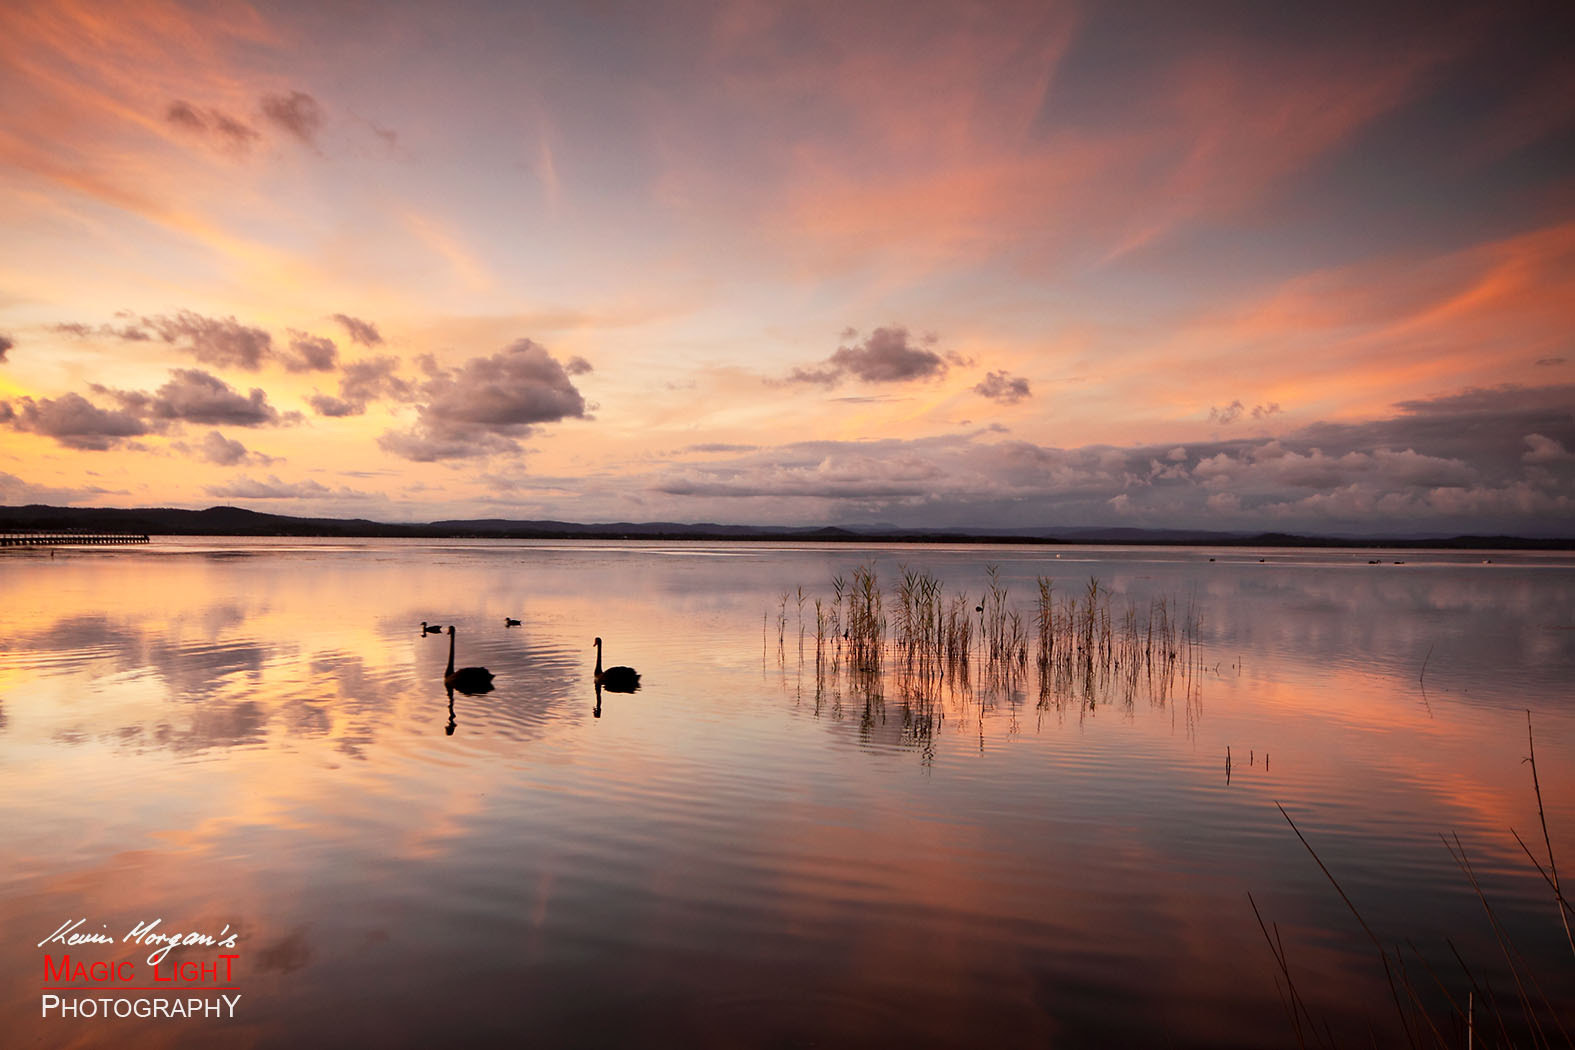 Photograph Swans at Sunset by Kevin Morgan on 500px